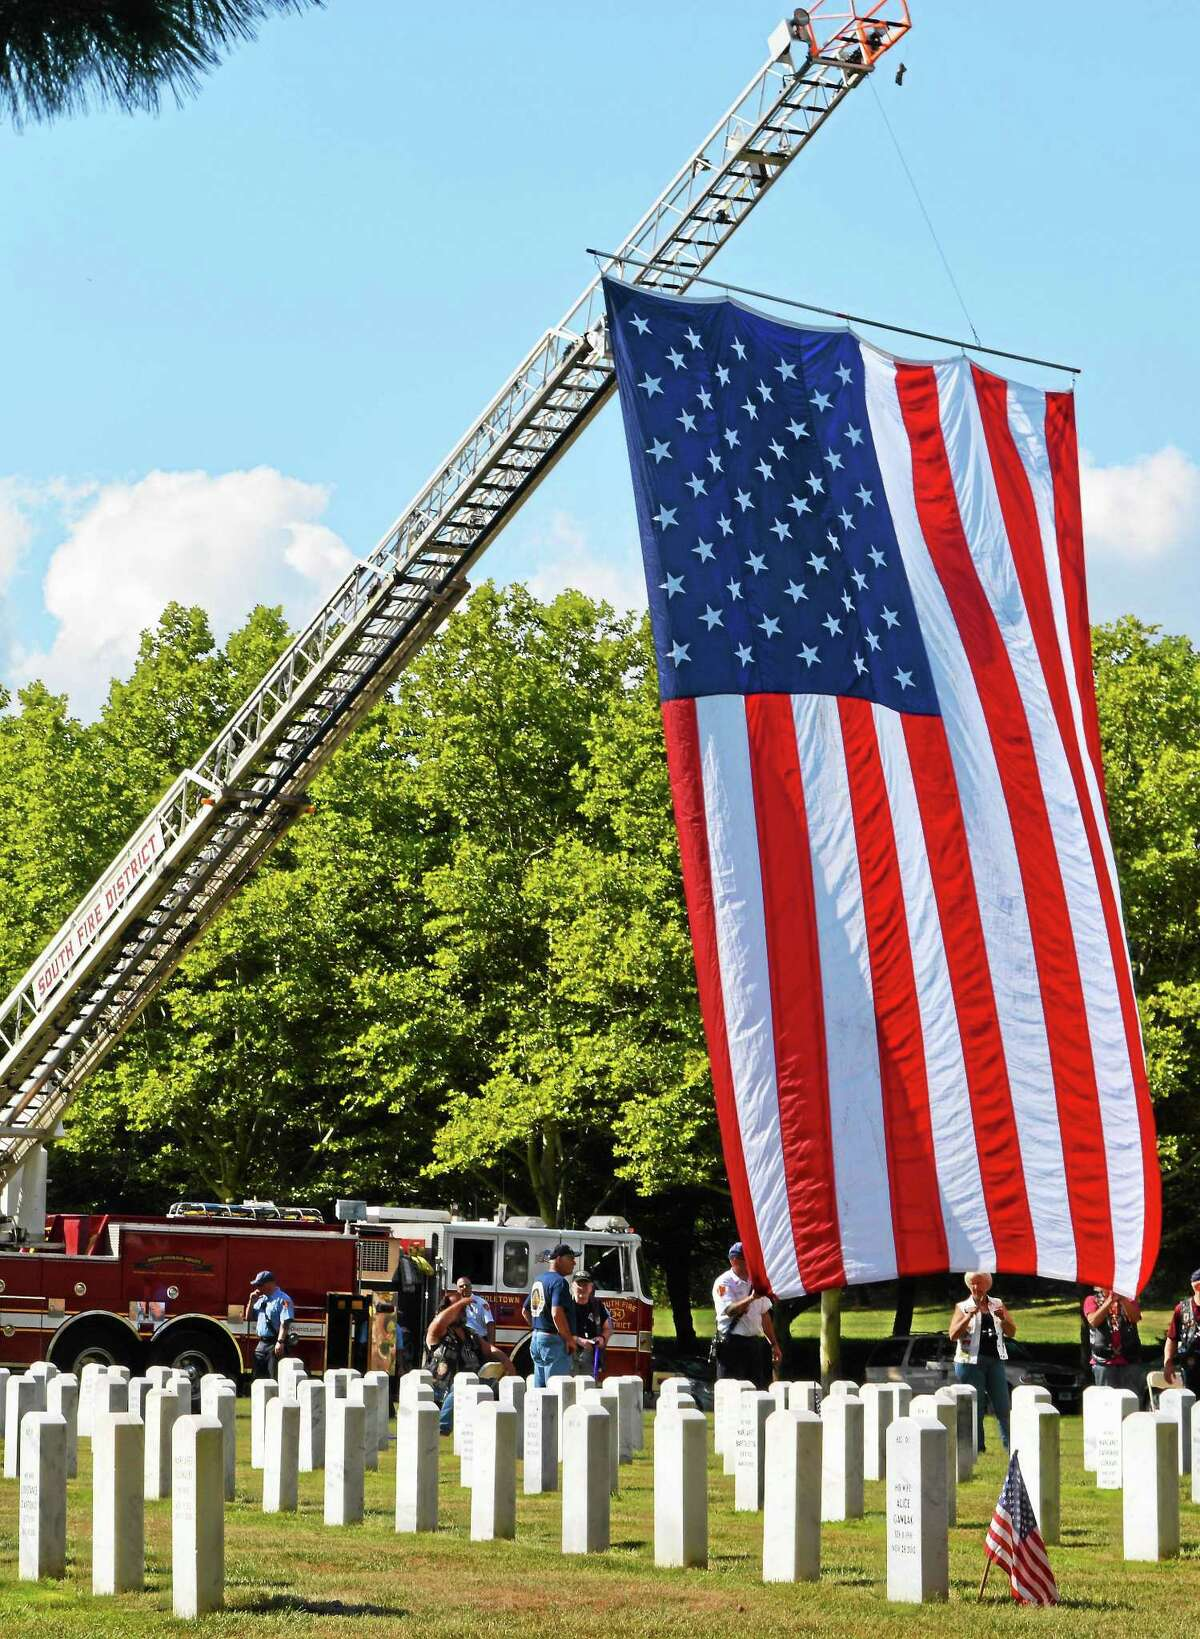 The city's South Fire District ladder truck raised a giant American flag to serve as a backdrop for the groundbreaking.